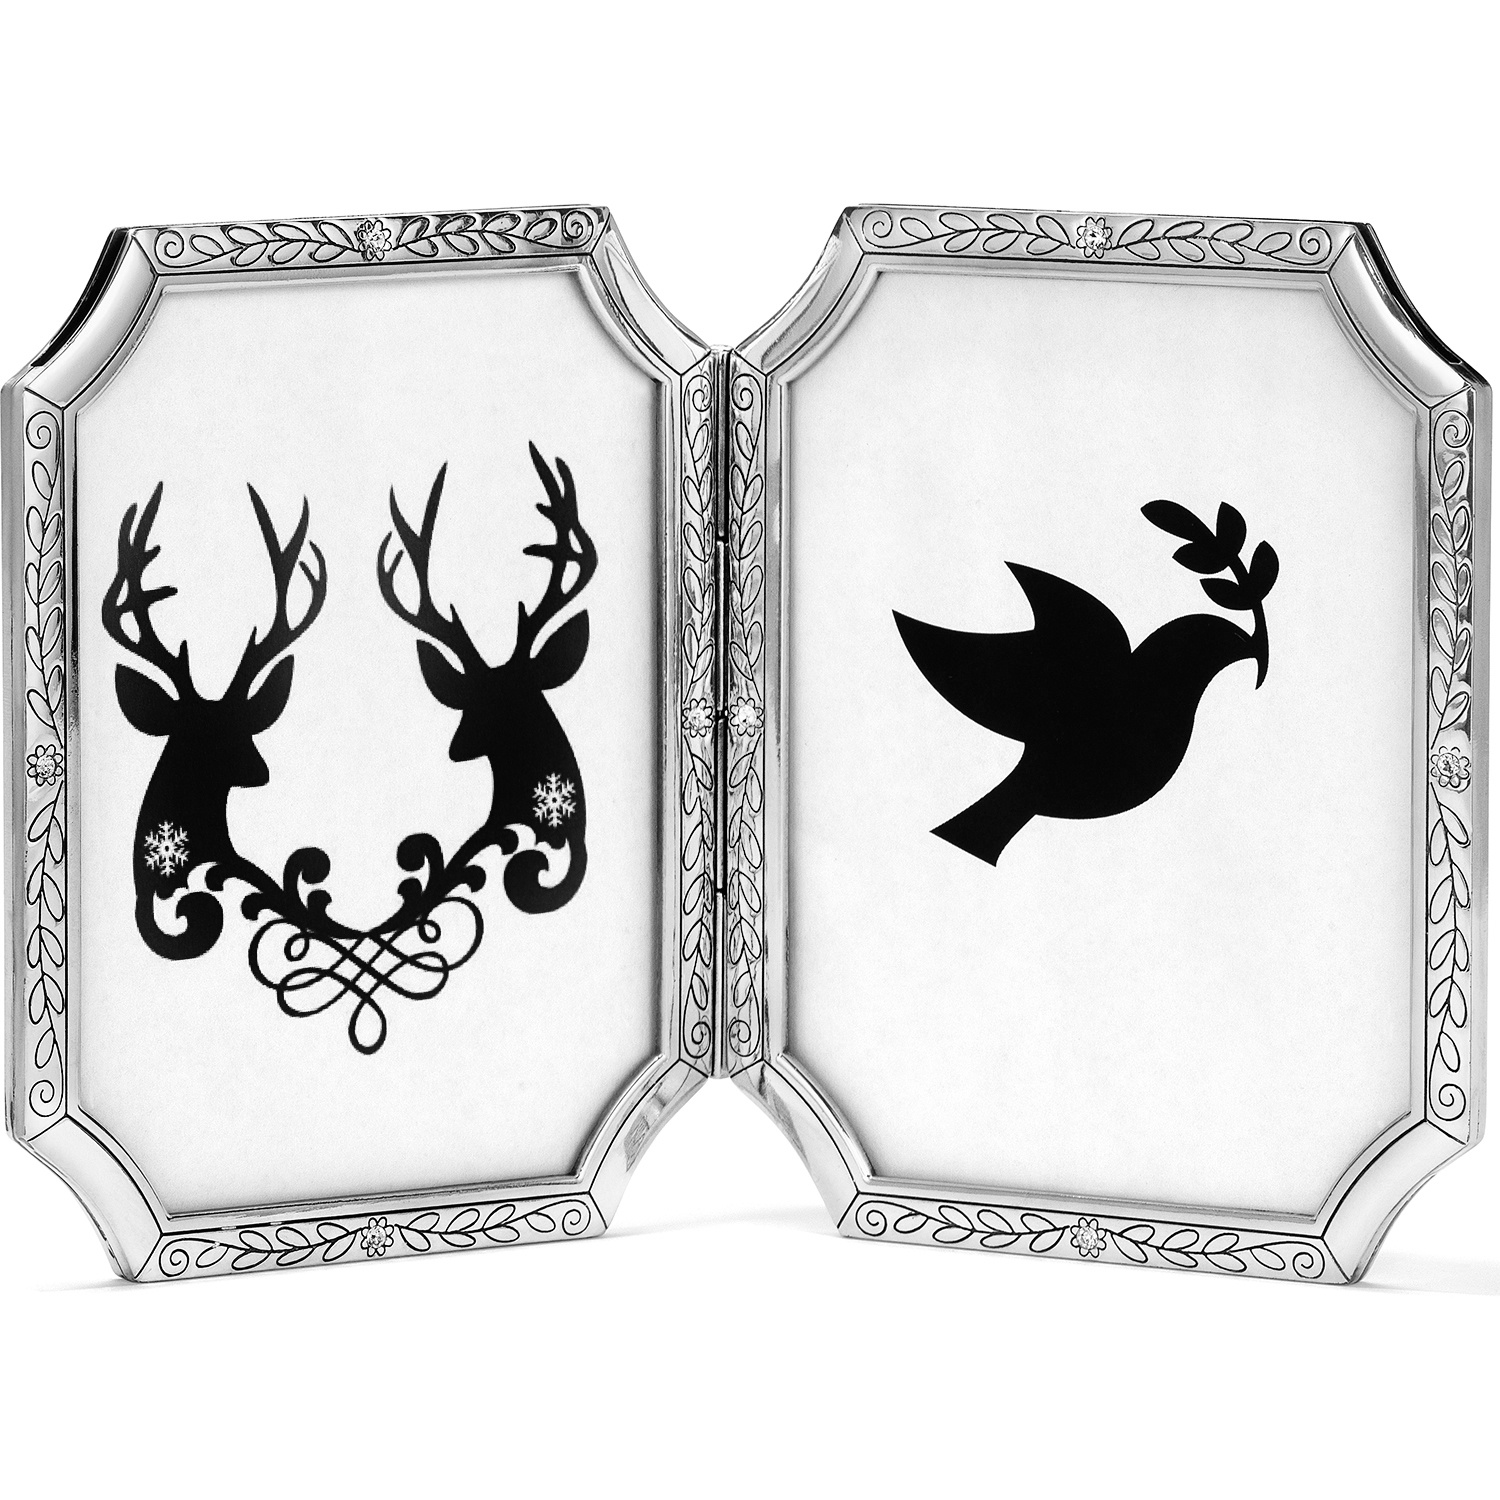 tapestry tapestry double frame - Double Photo Frame